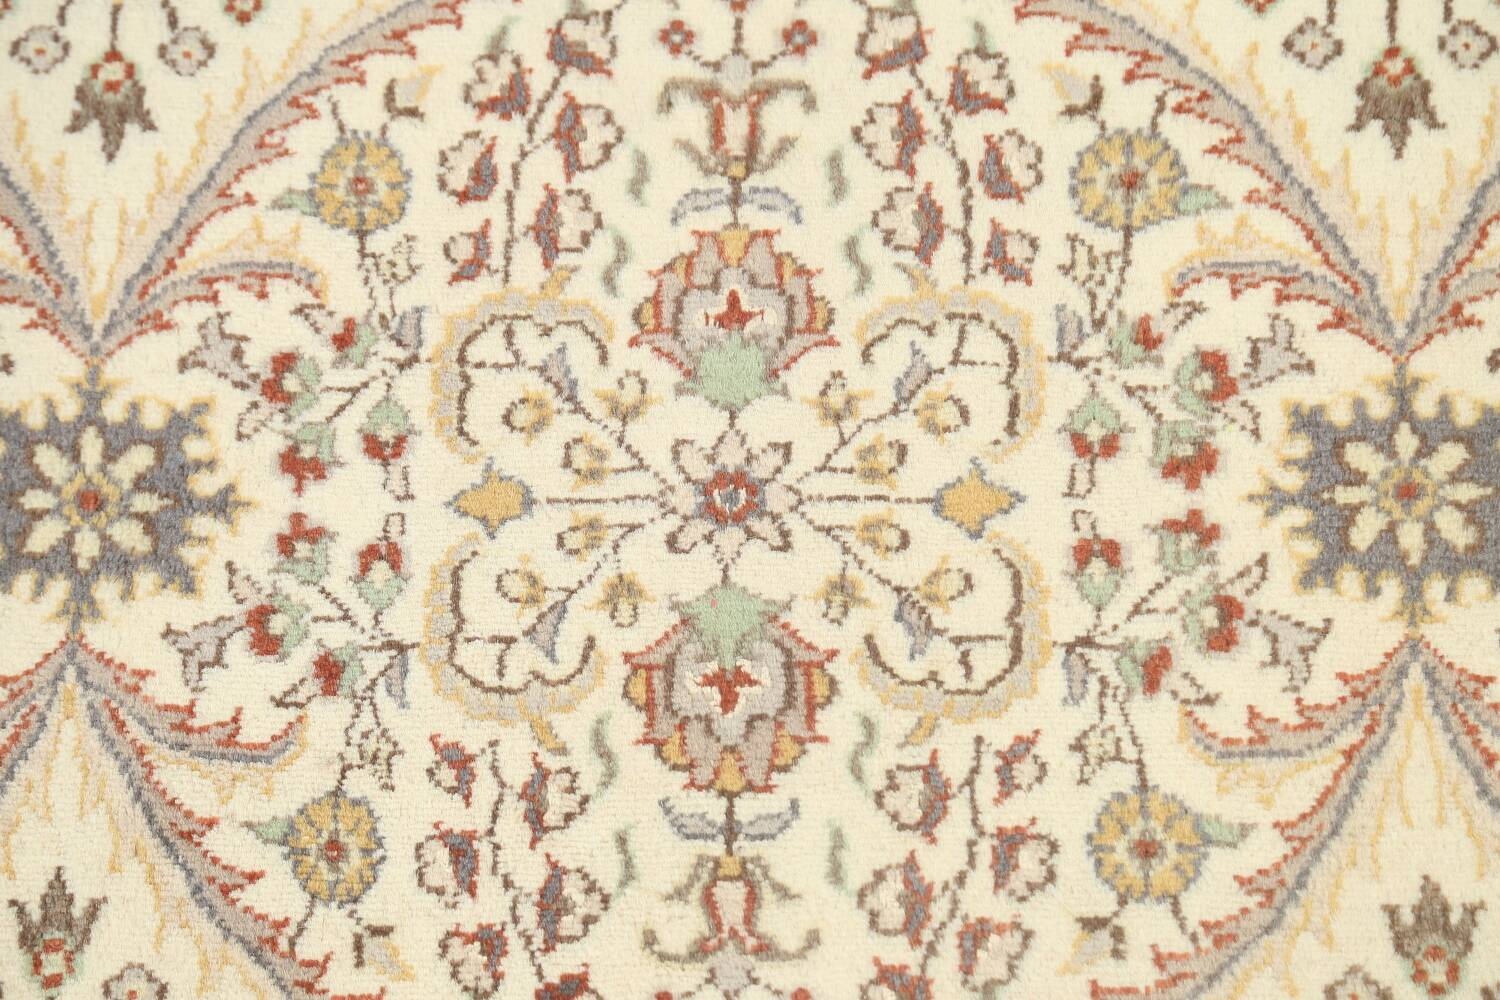 100% Vegetable Dye Floral Tabriz Oriental Area Rug 4x6 image 8